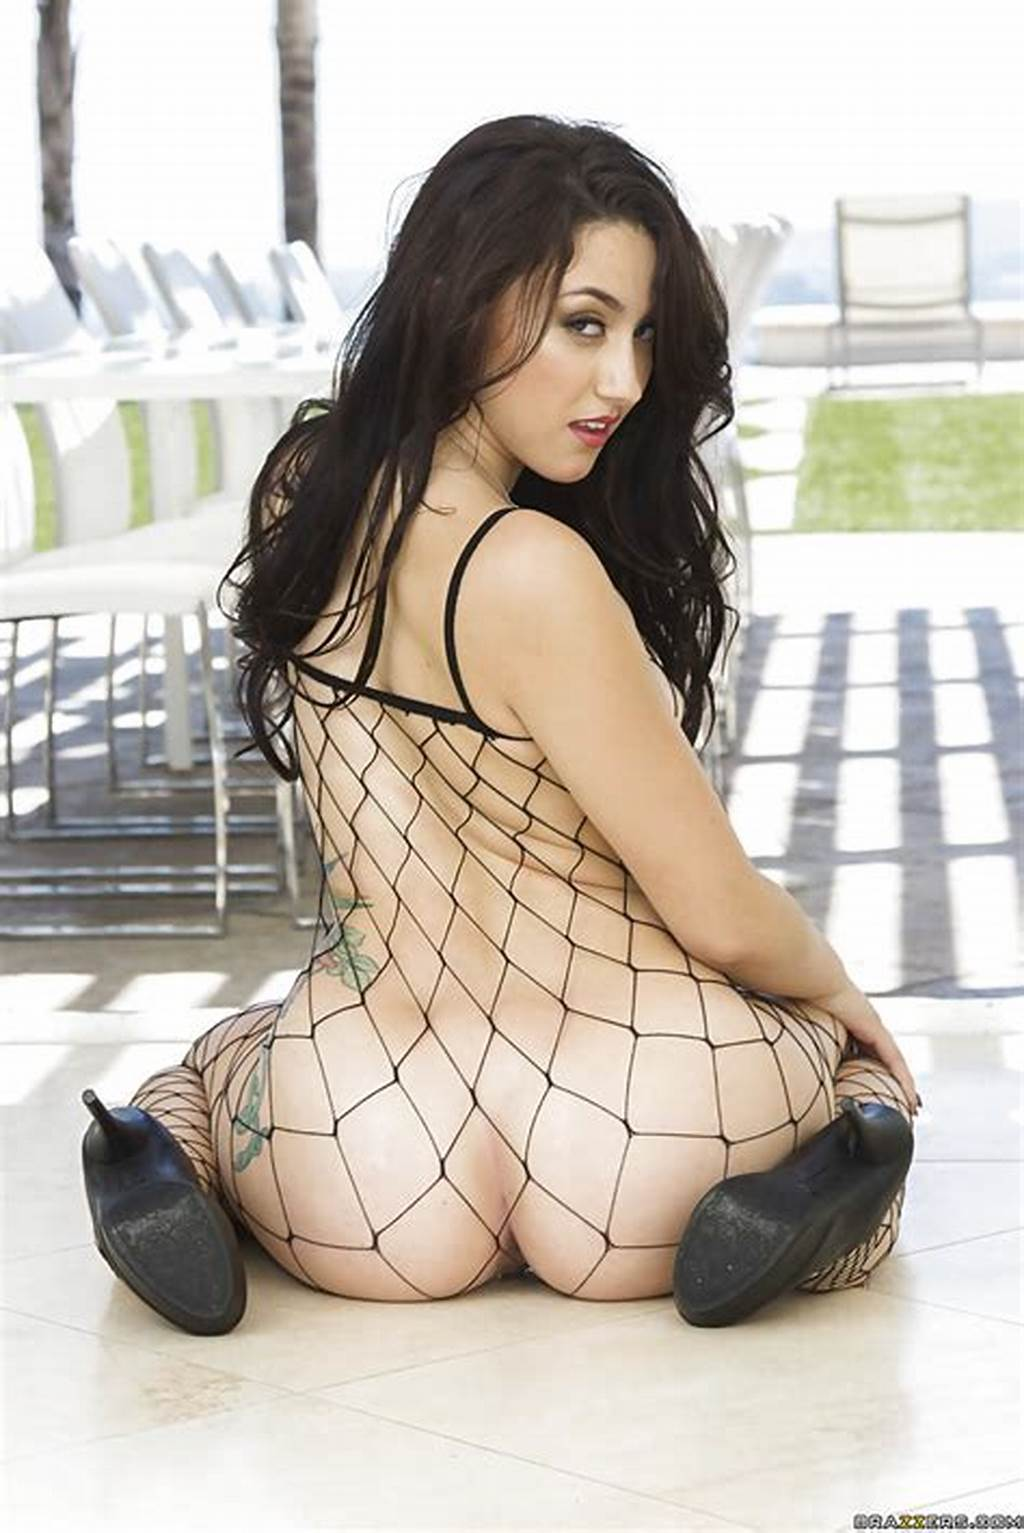 #Brunette #Babe #With #A #Perfect #Ass #Mandy #Muse #In #Fishnet